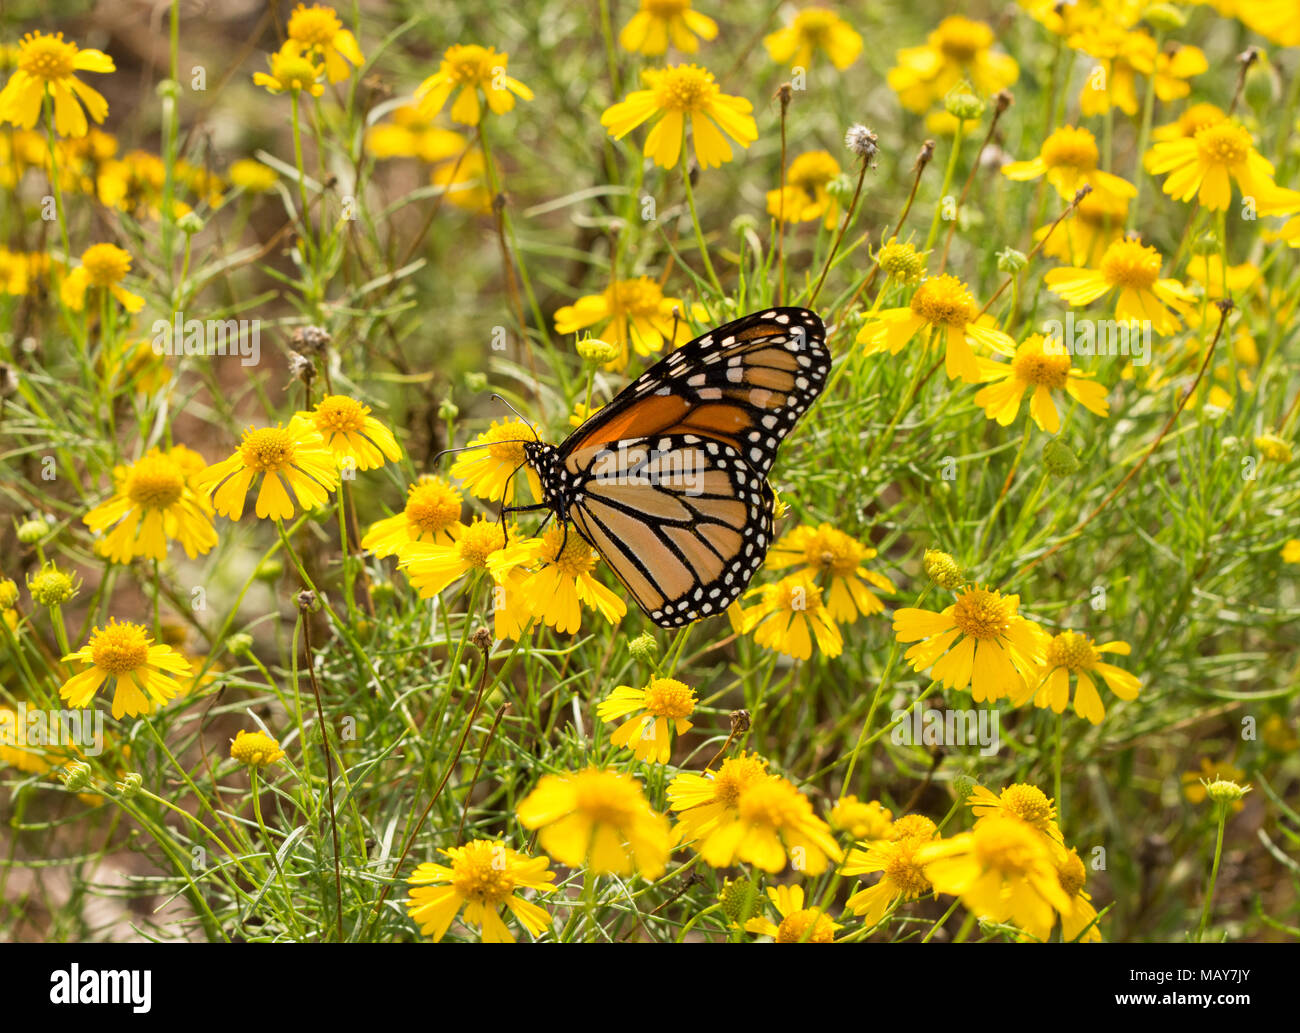 Migrating Monarch butterfly feeding on flowers in a field of bright yellow Sneezeweed - Stock Image